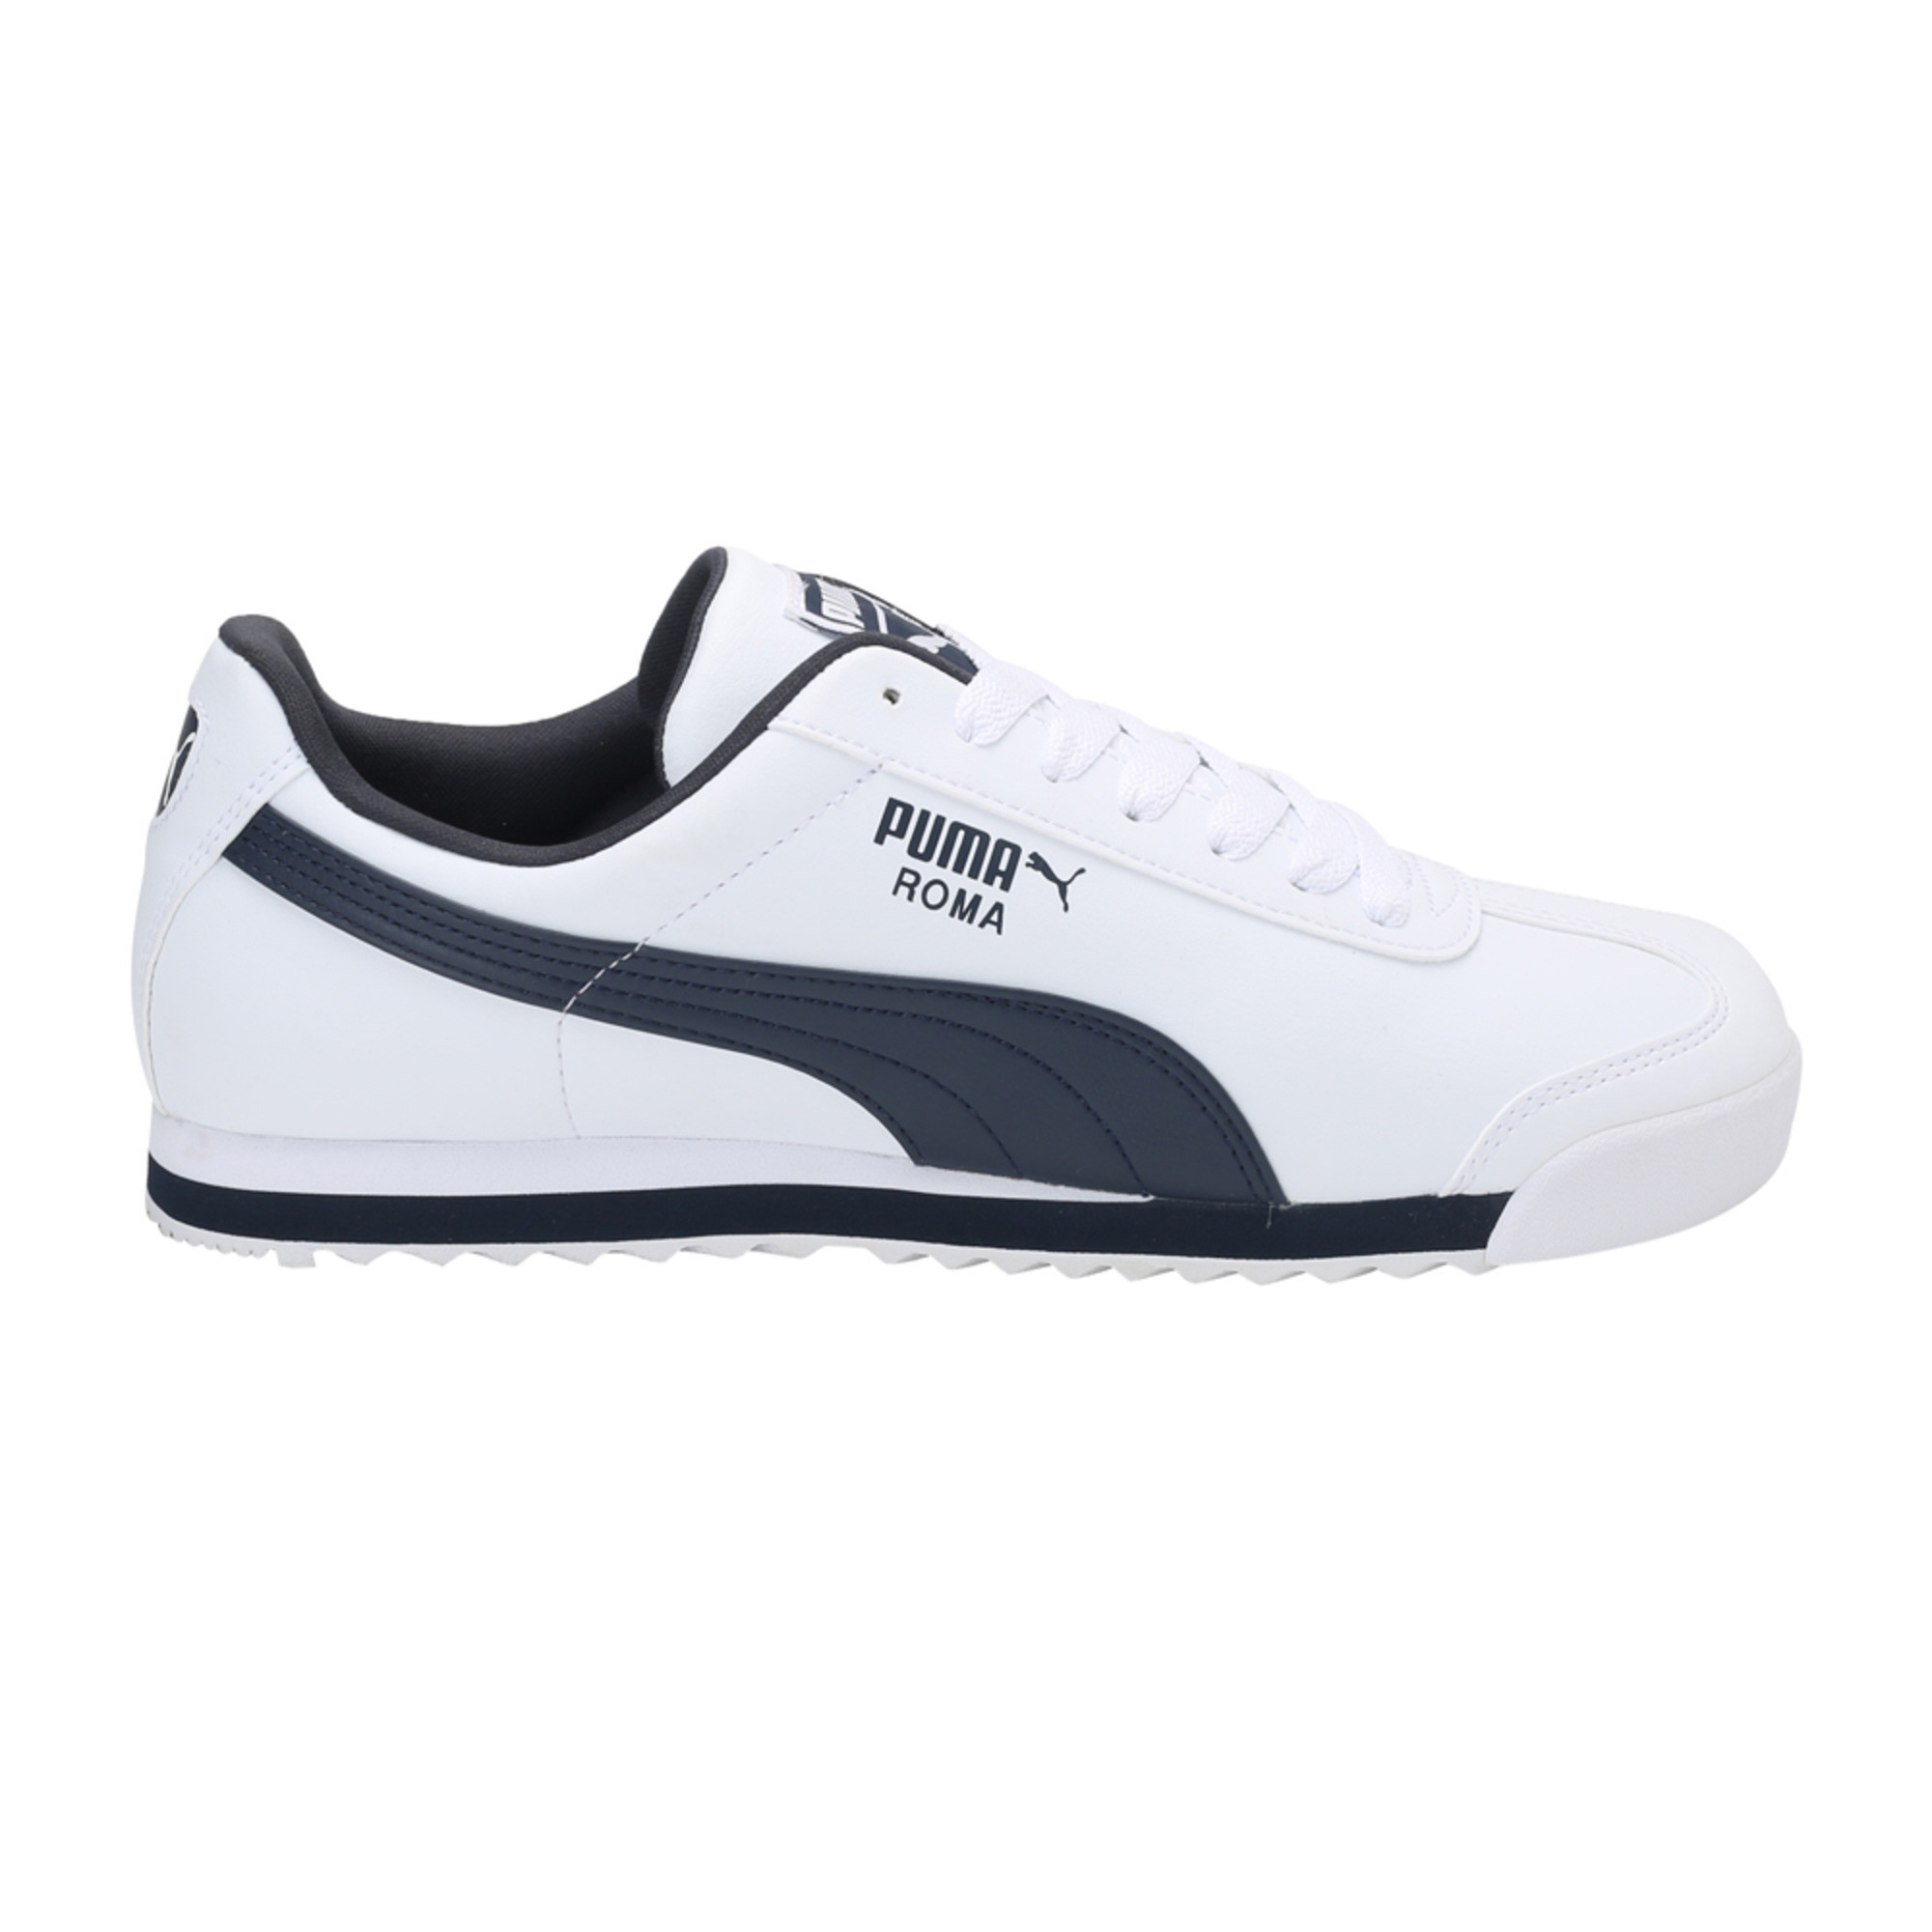 PUMA-Roma-Basic-Men-039-s-Sneakers-Men-Shoe-Sport-Shoe thumbnail 21